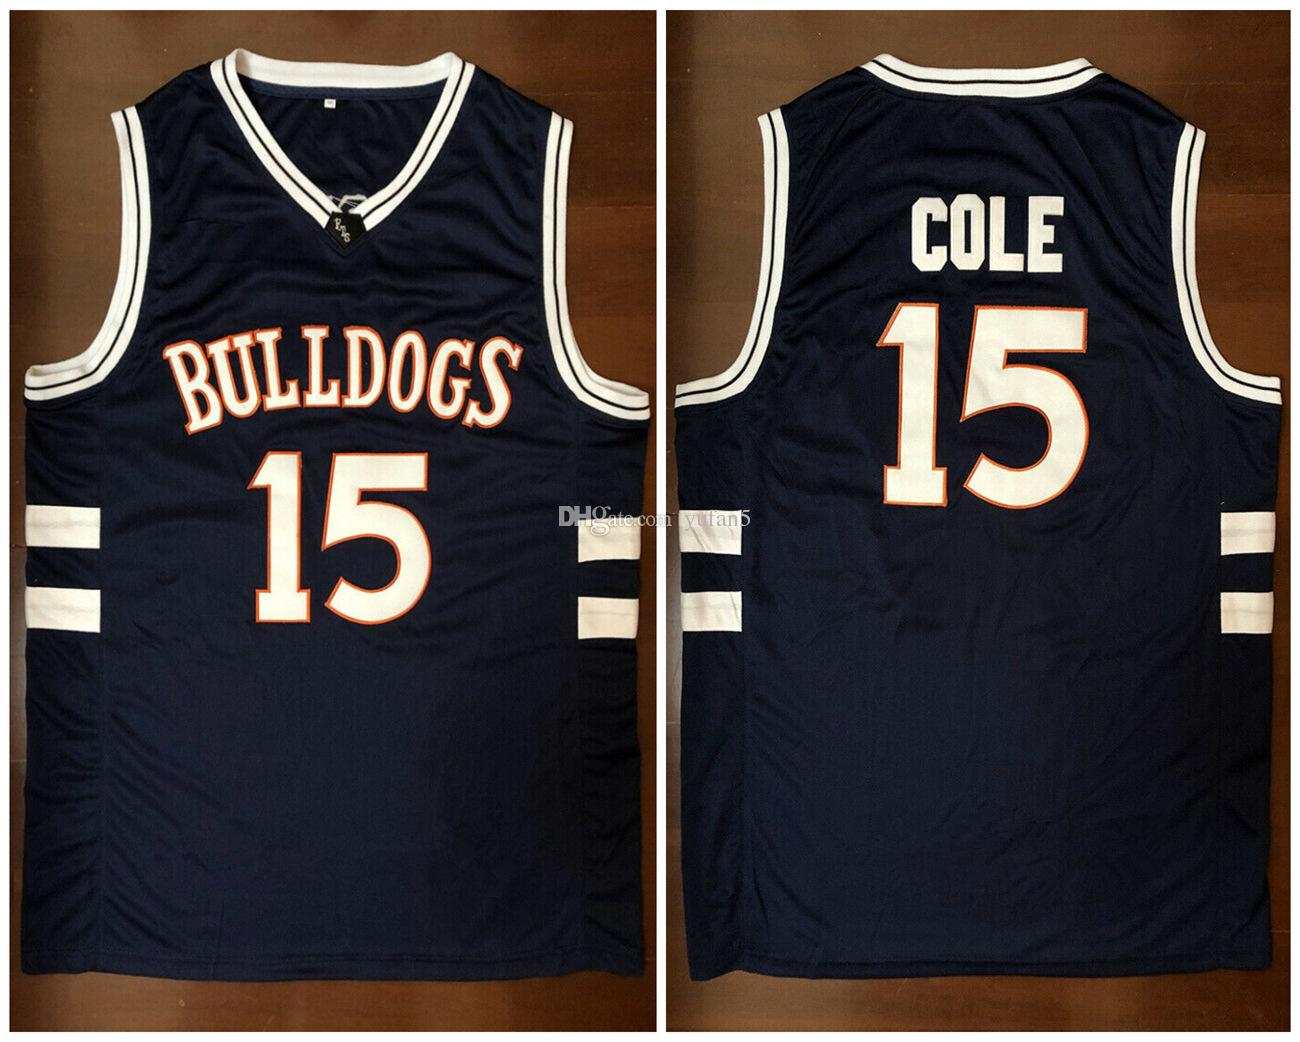 free shipping 30242 bfc86 J. Cole #15 Bulldogs High School Retro Basketball Jersey Mens Stitched  Custom Any Number Name Jerseys